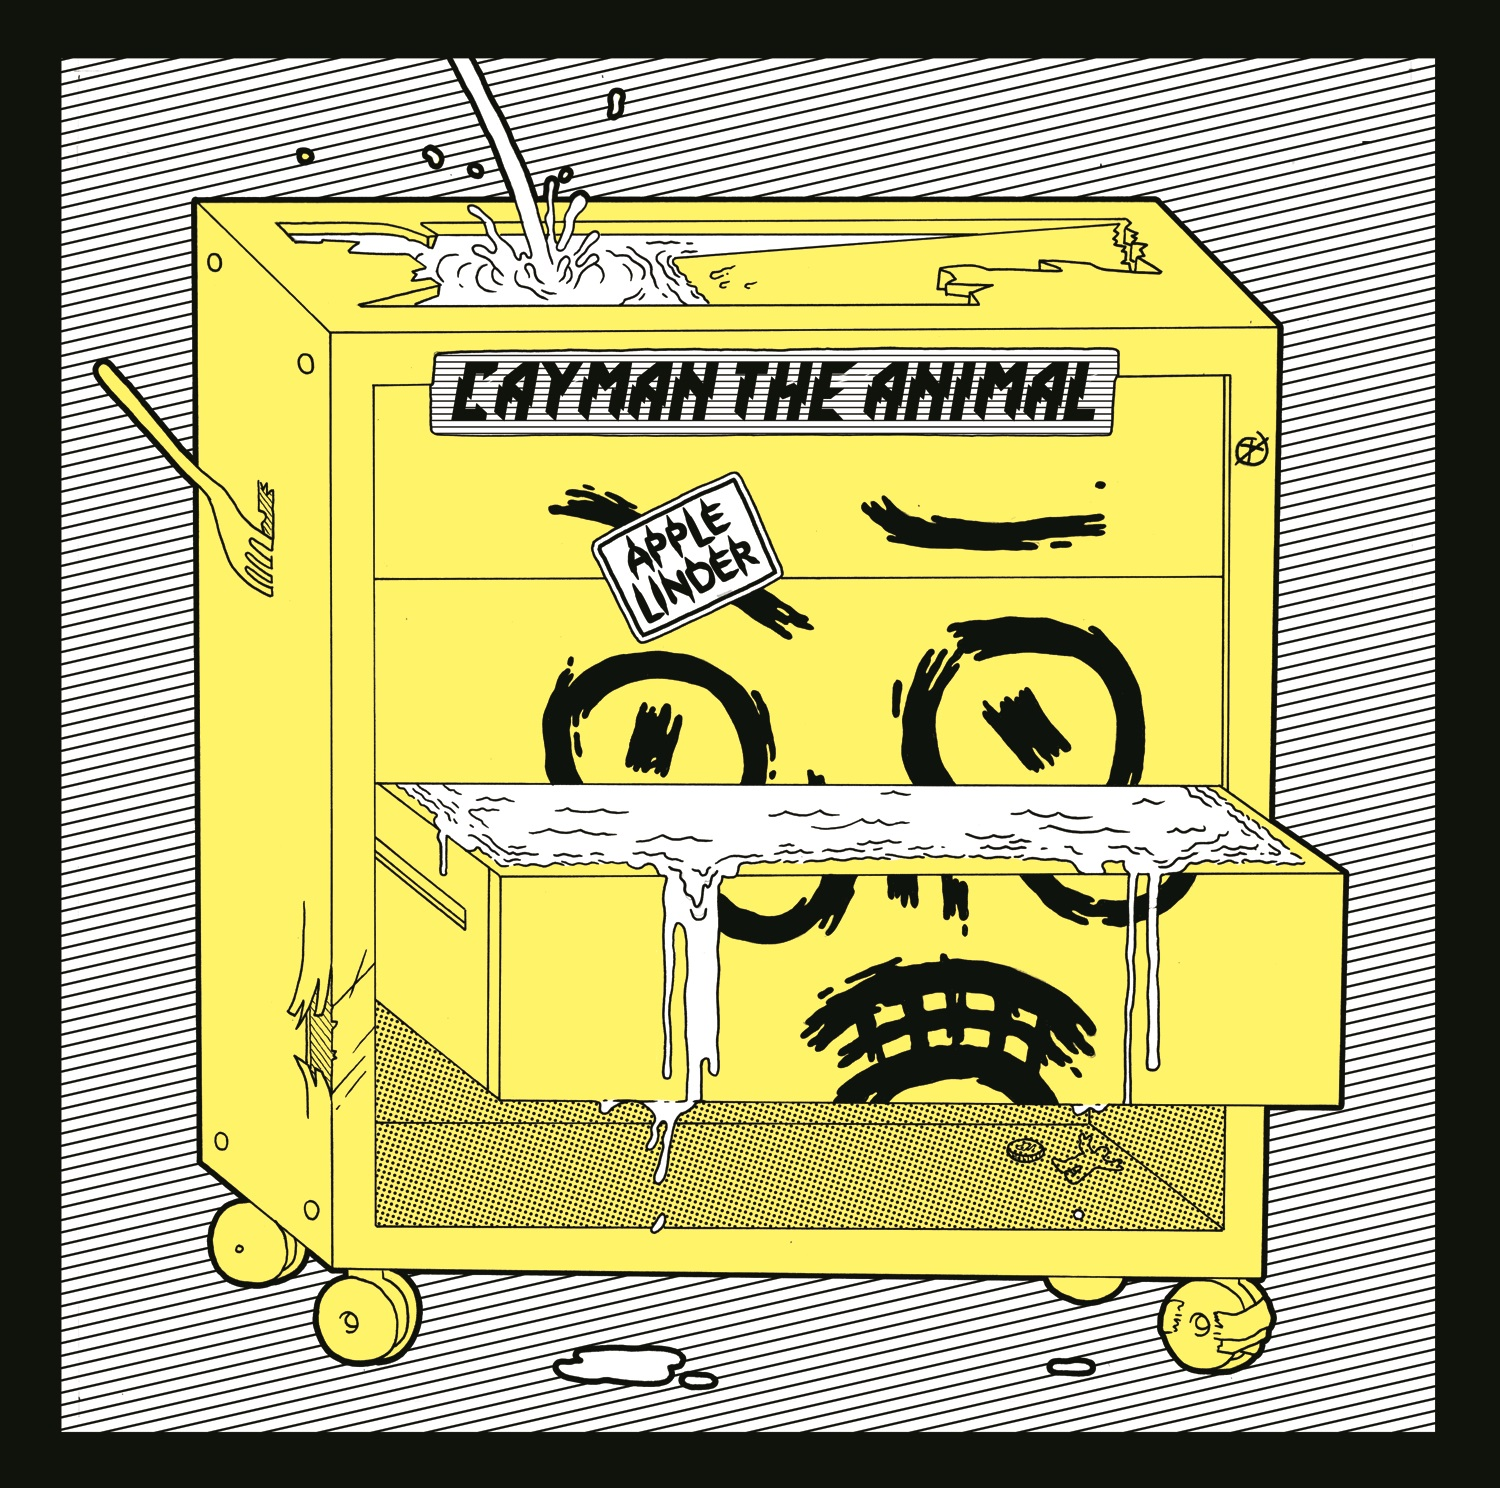 Cayman The Animal - Apple Linder CD